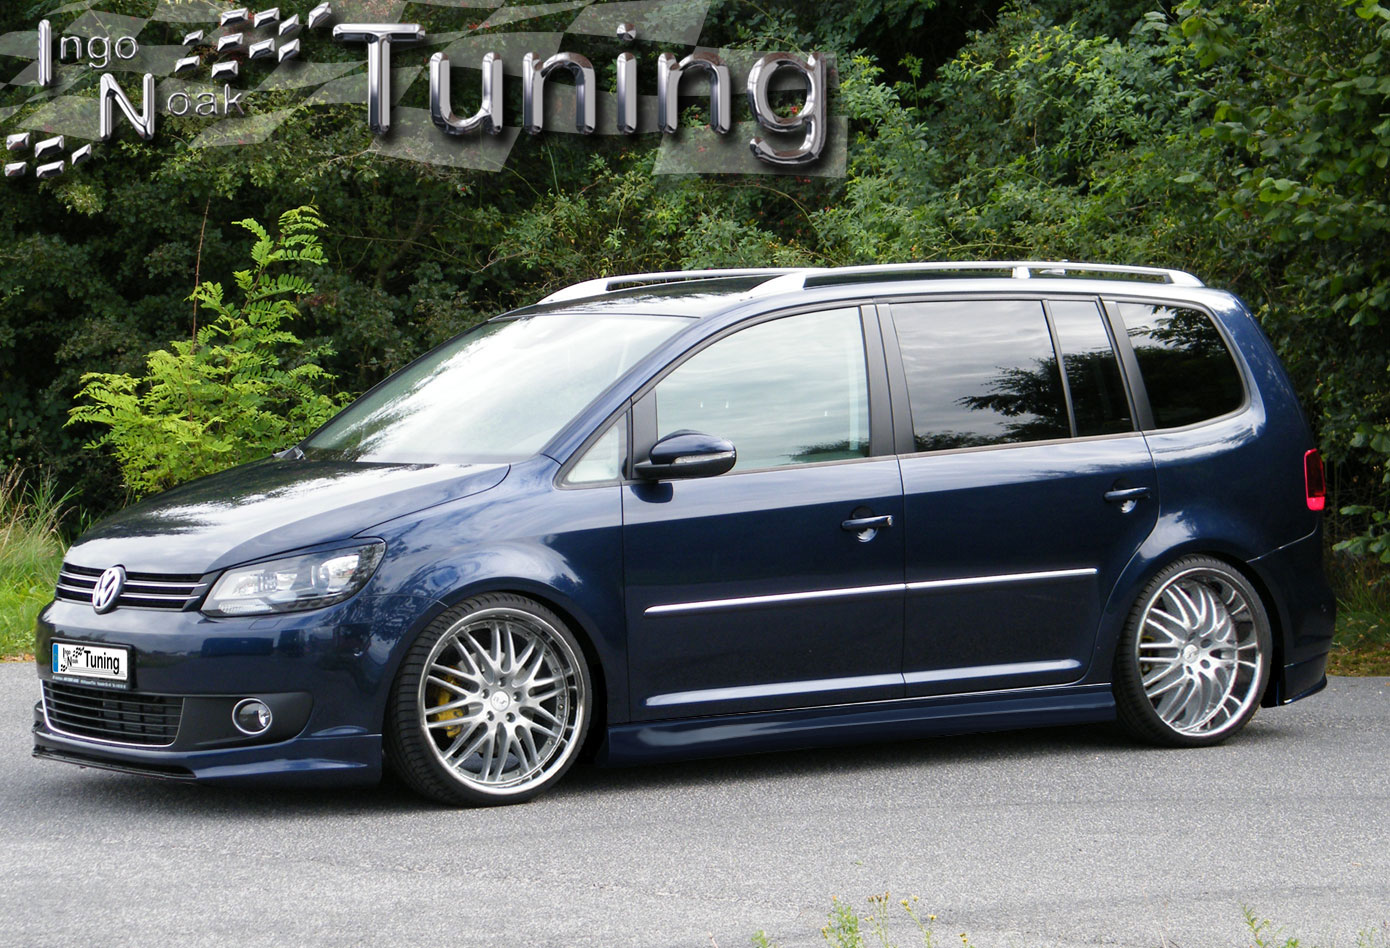 bodykit vw touran facelift gp2 frontspoiler heckansatz ahk. Black Bedroom Furniture Sets. Home Design Ideas